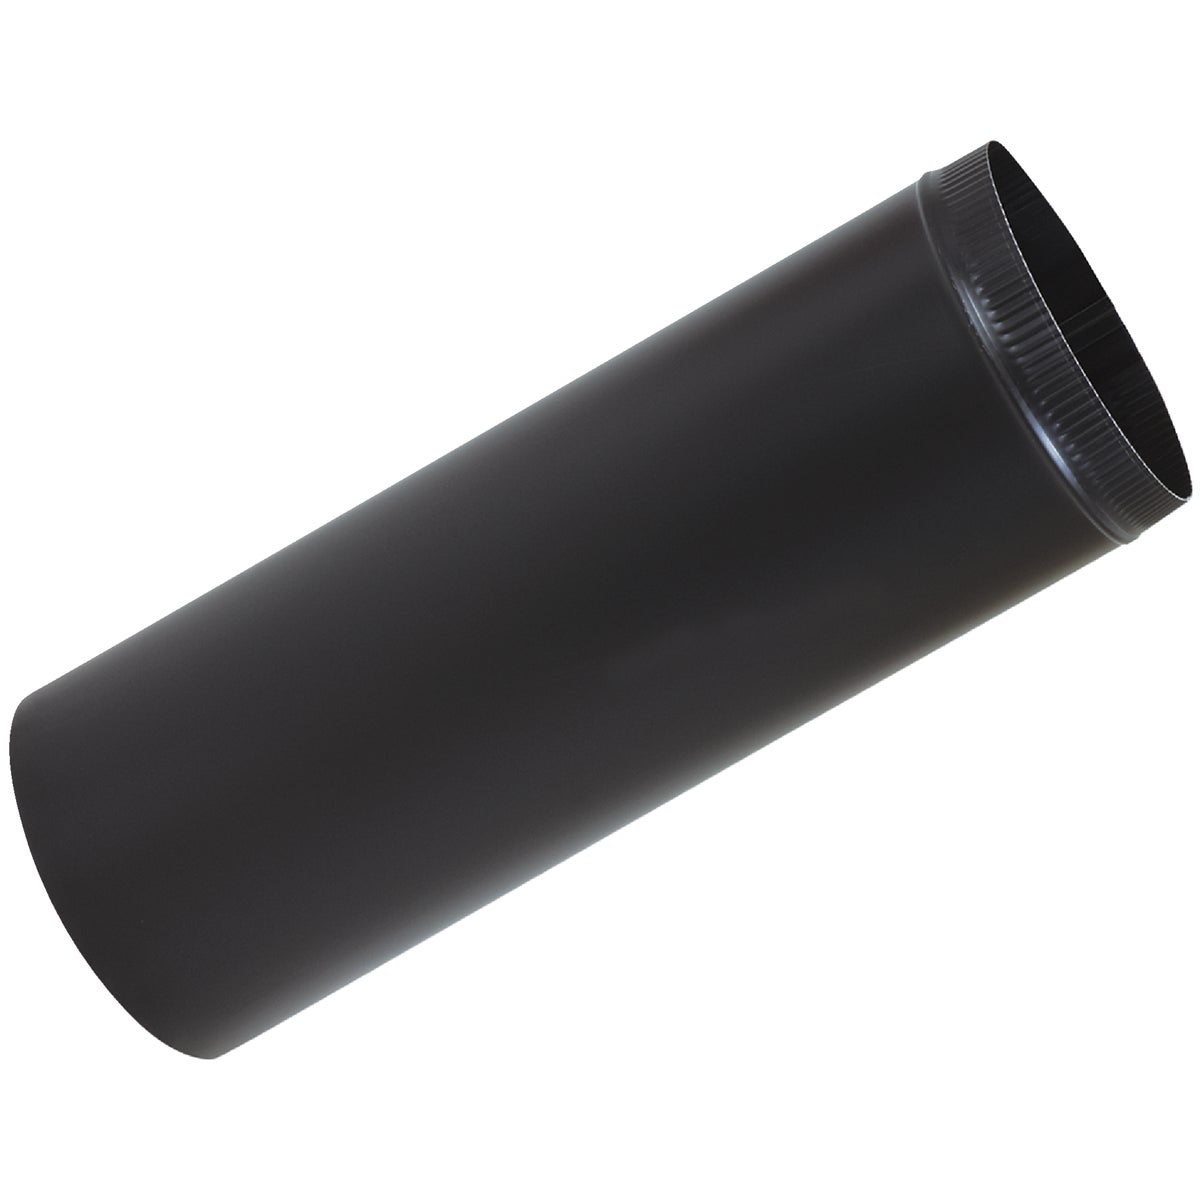 3X24 BLACK STOVE PIPE - BM0343 by Imperial Mfg Group